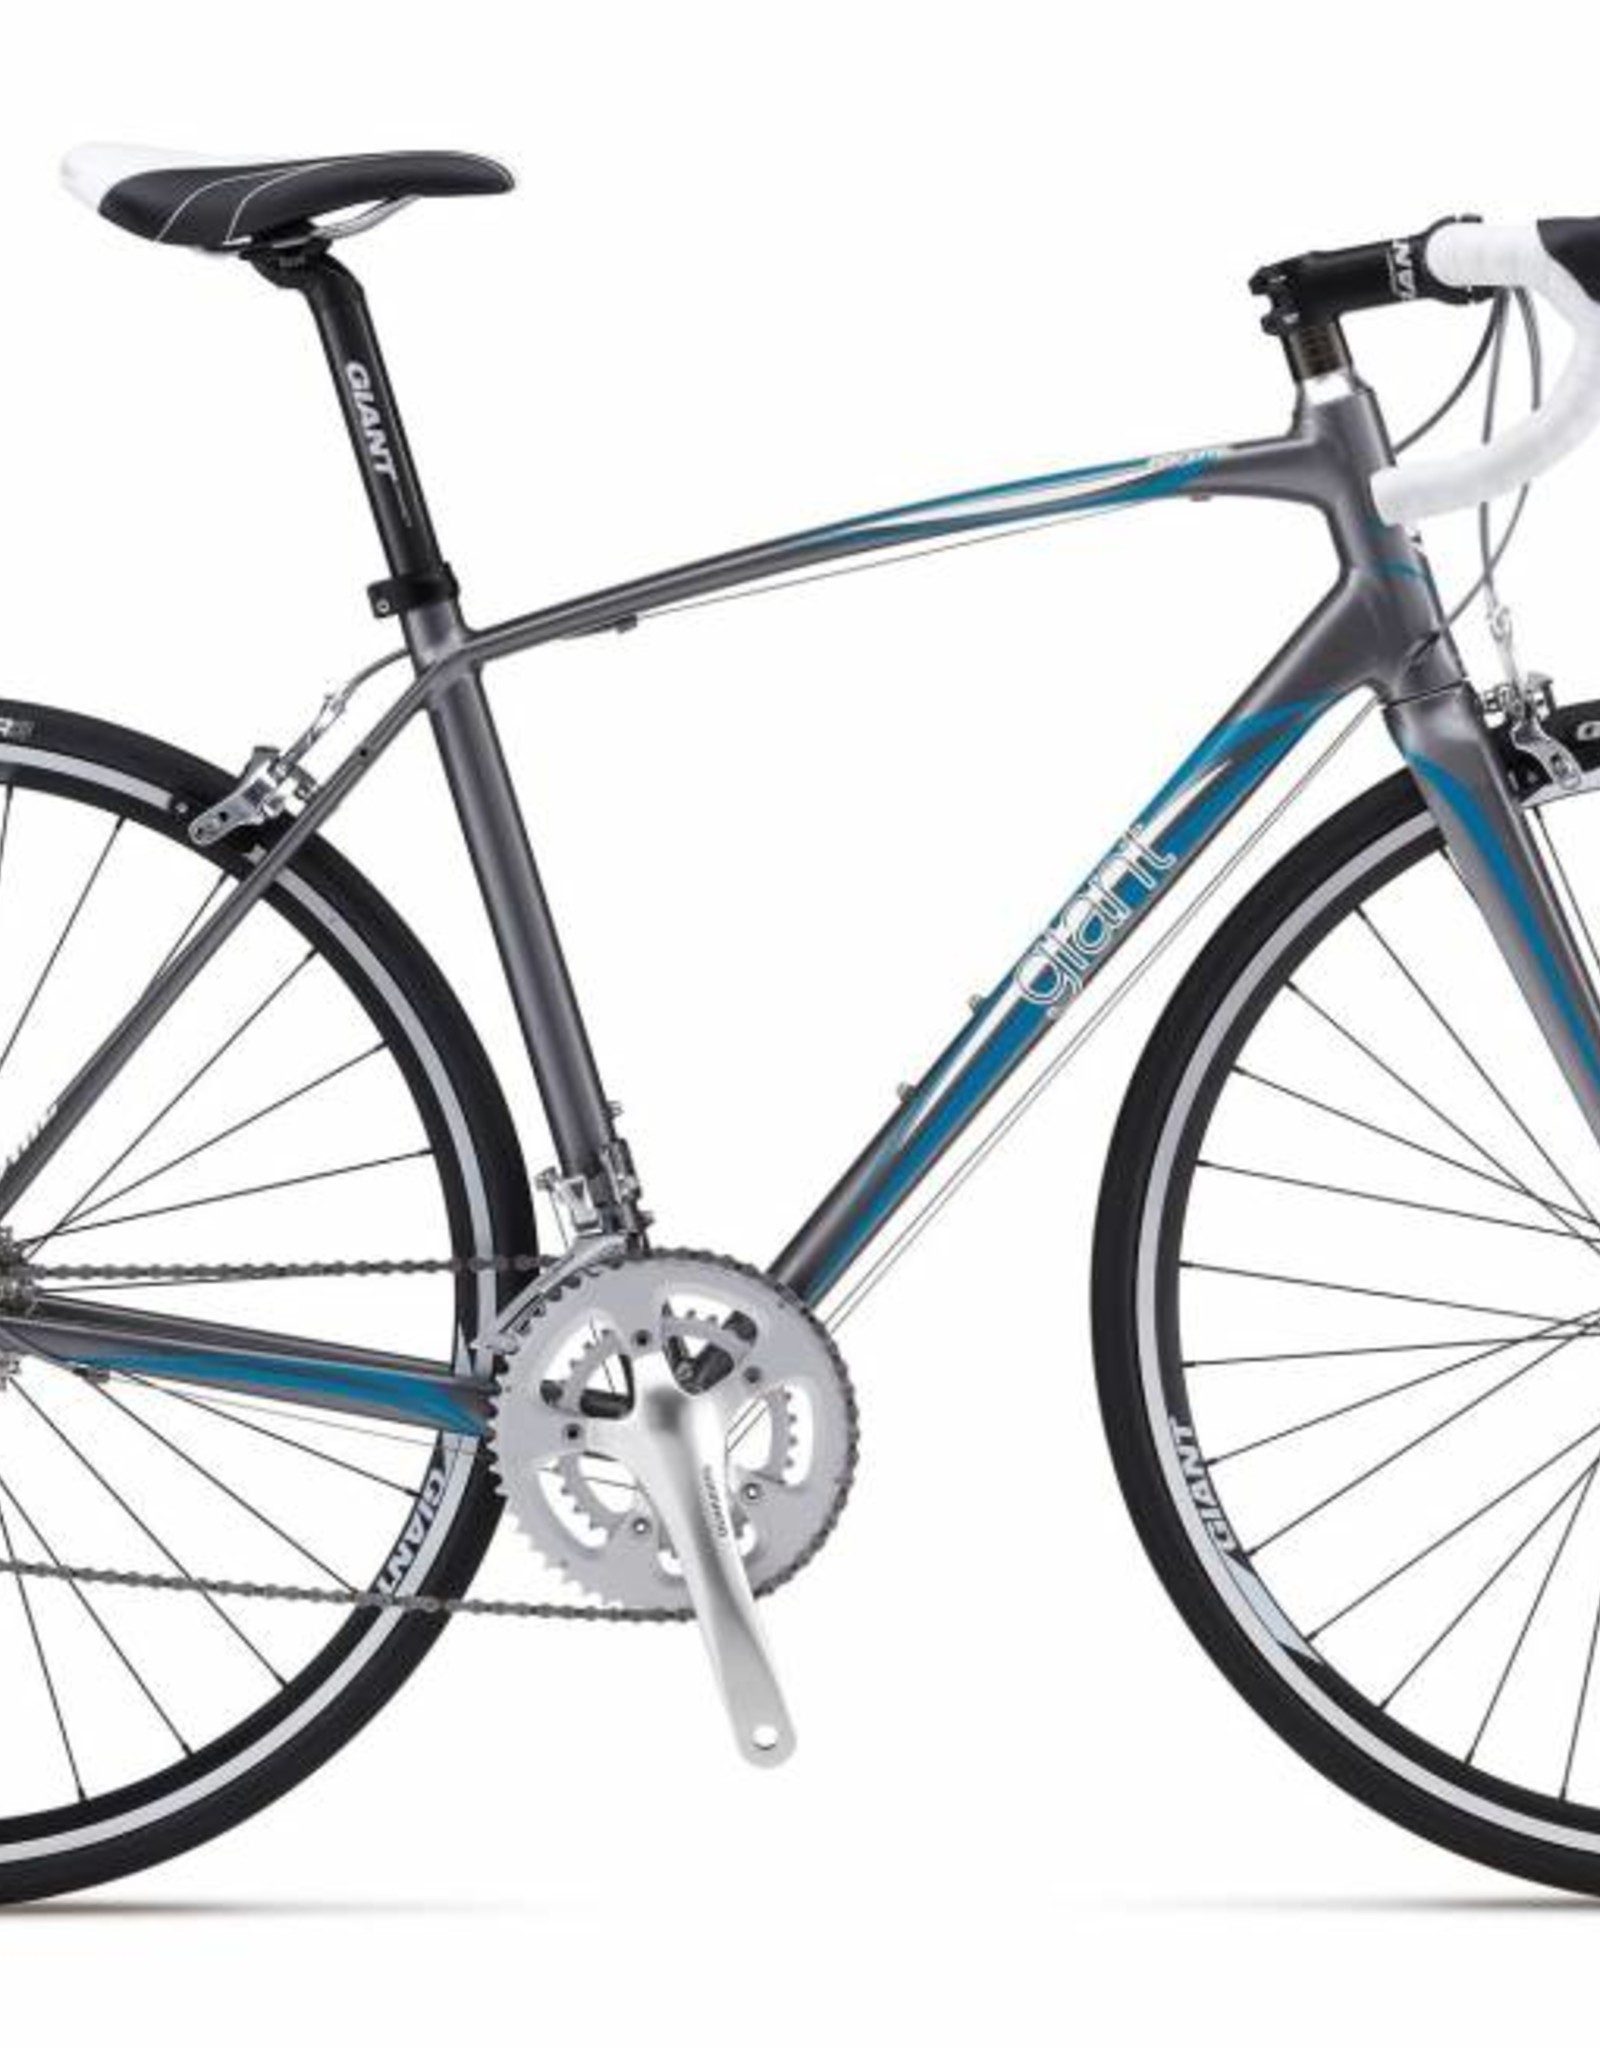 Giant Giant Avail 1 2012 - Womens Aluminum Road Bicycle